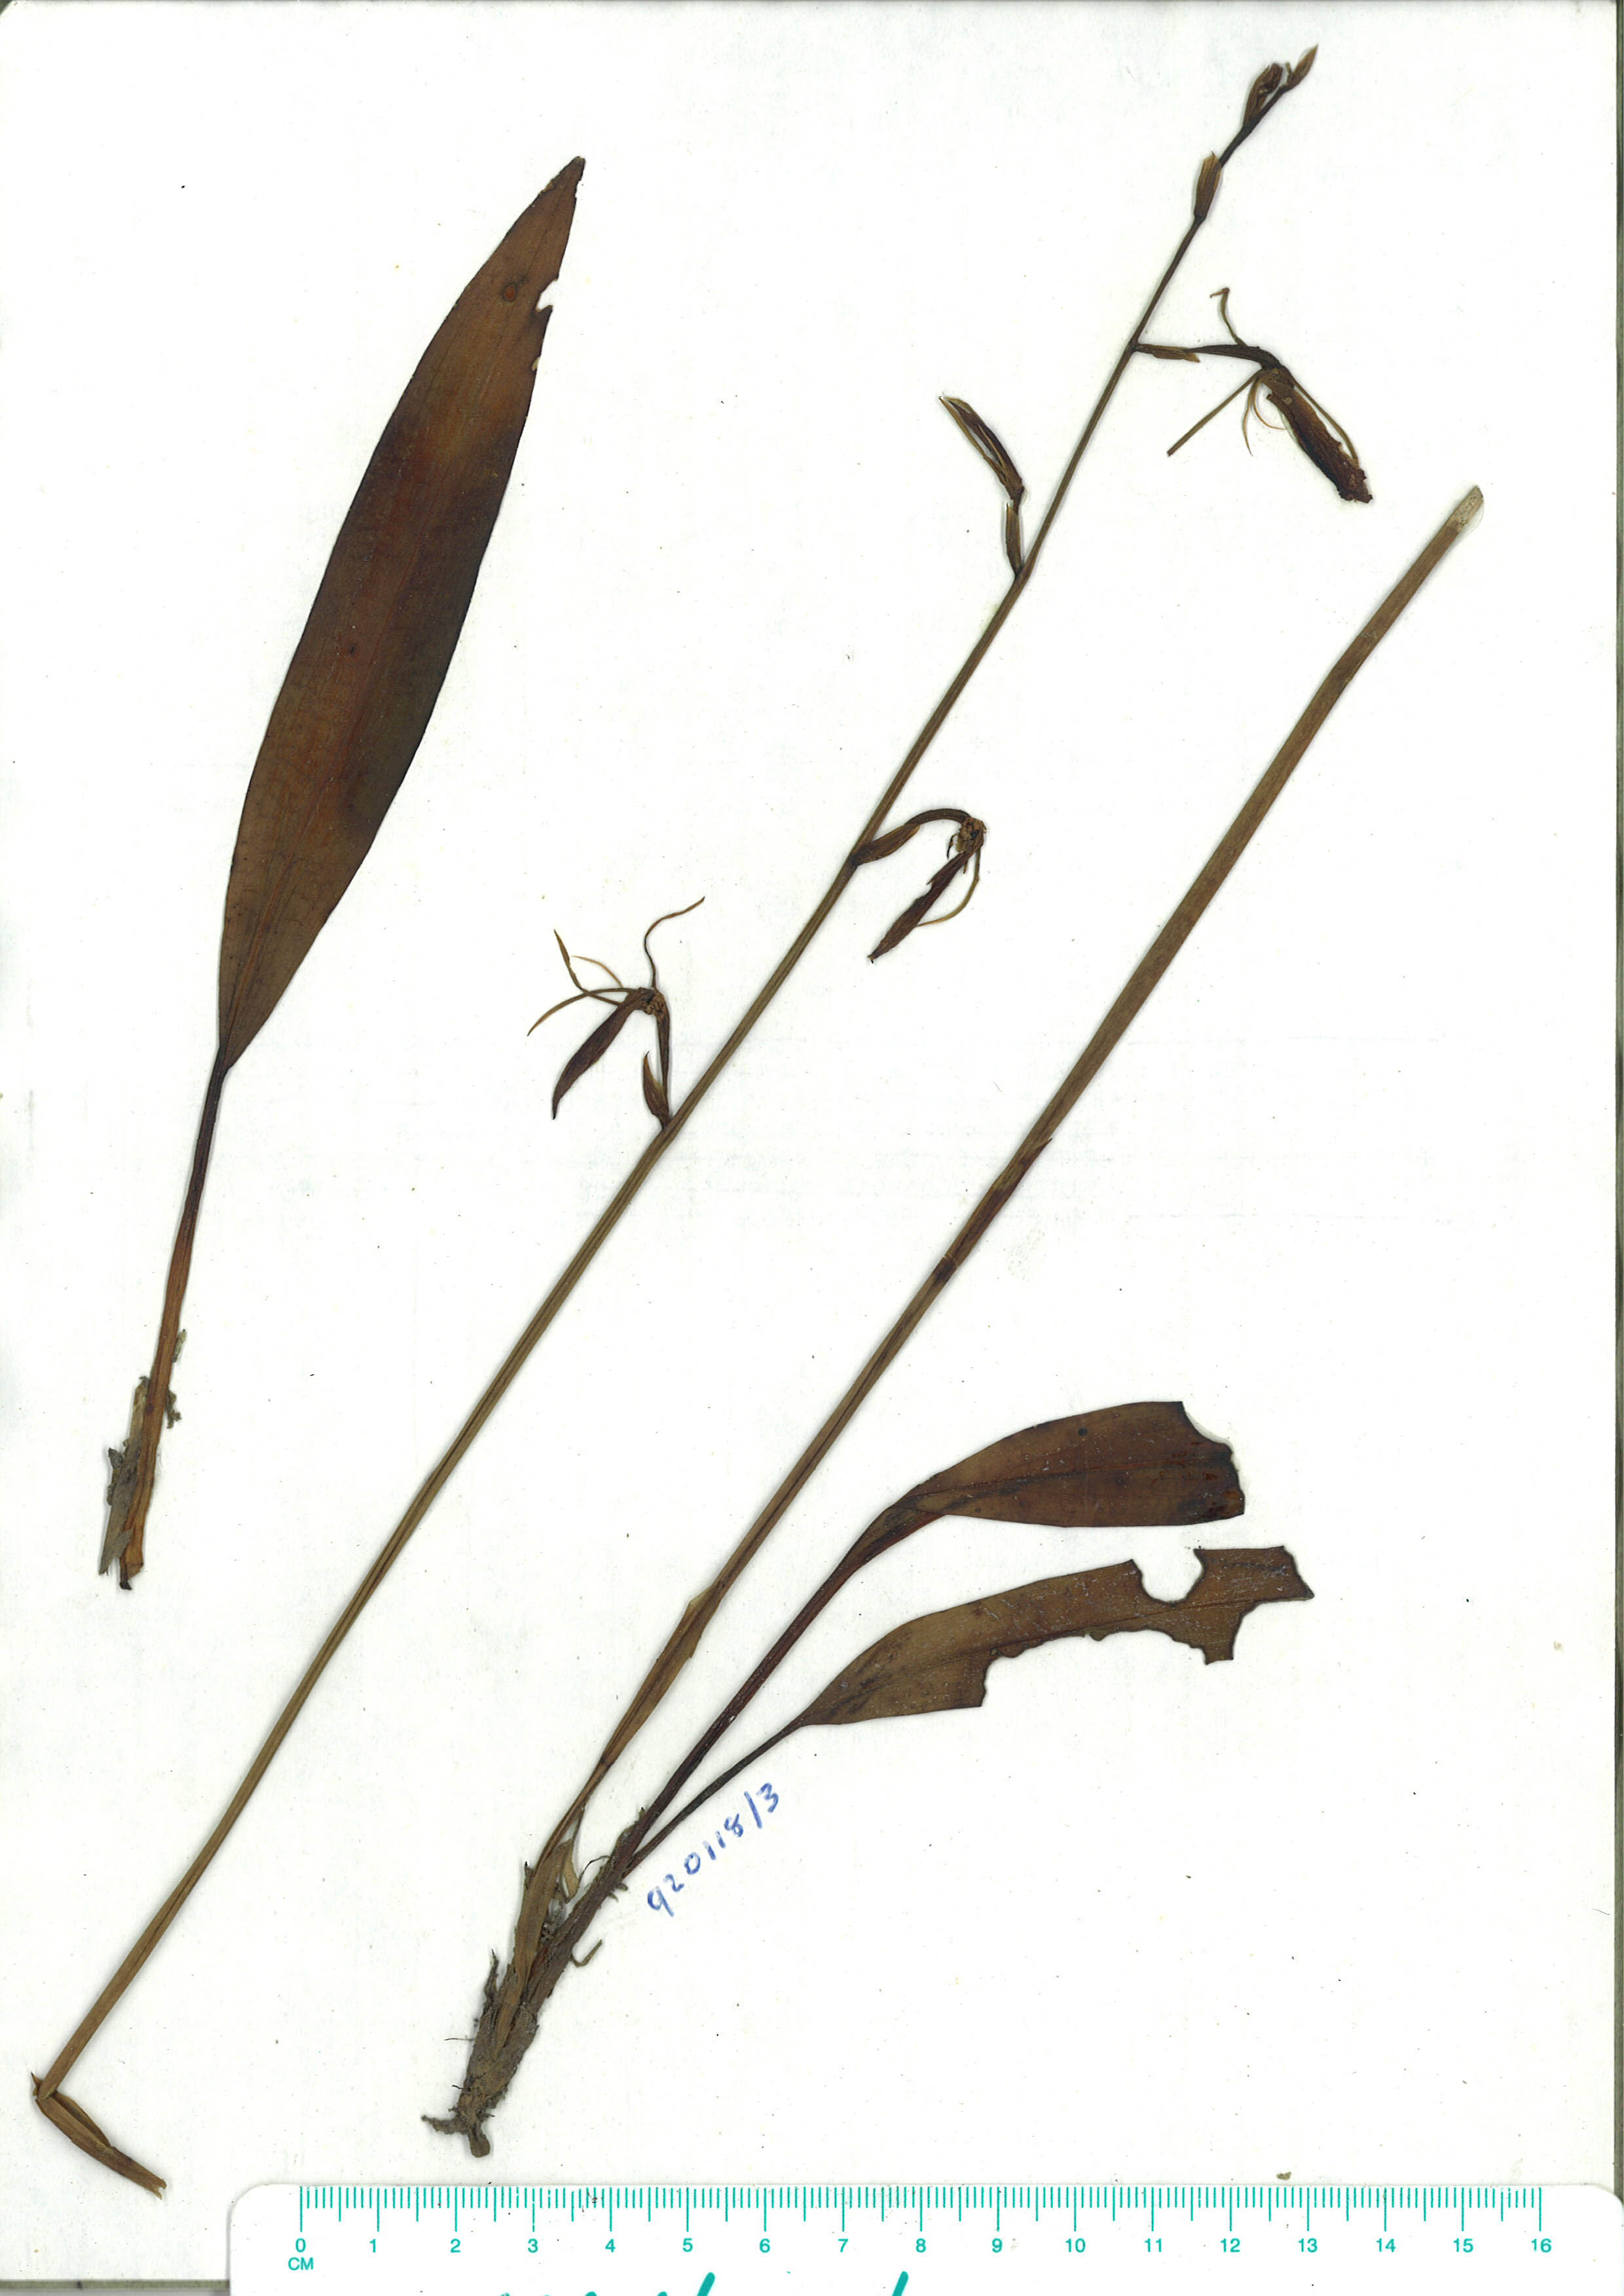 Scanned herbarium image of Cryptostylis subulata